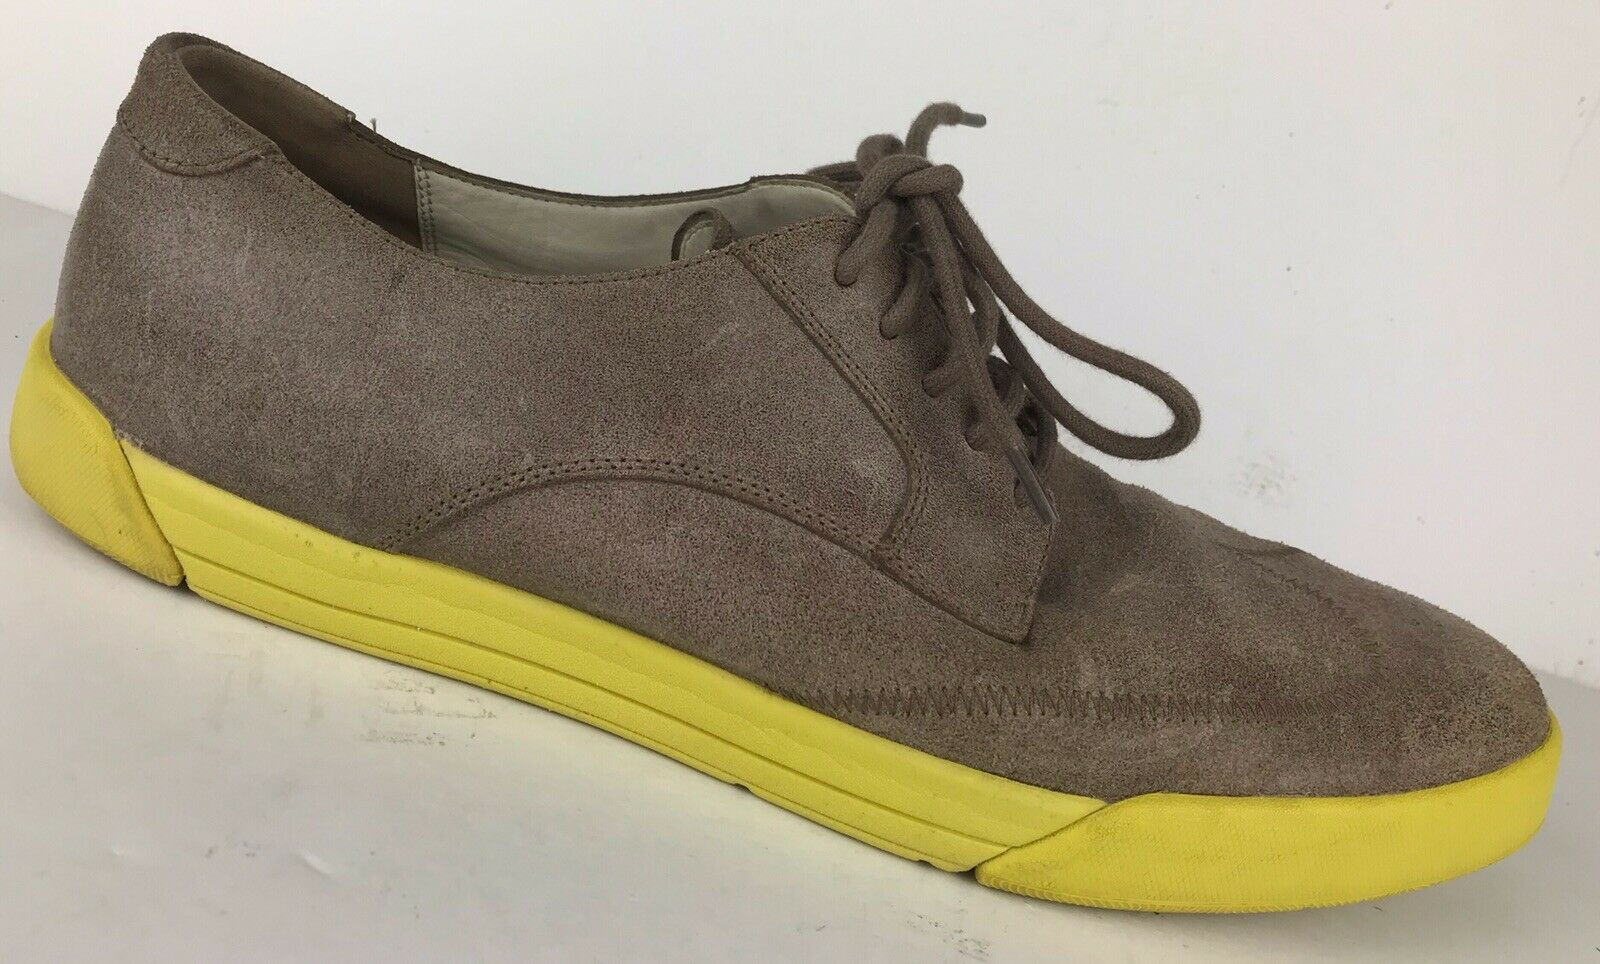 COLE HAAN Lace Up Wingtip Oxford Brown Yellow Sole C11409 Men SZ 13 M